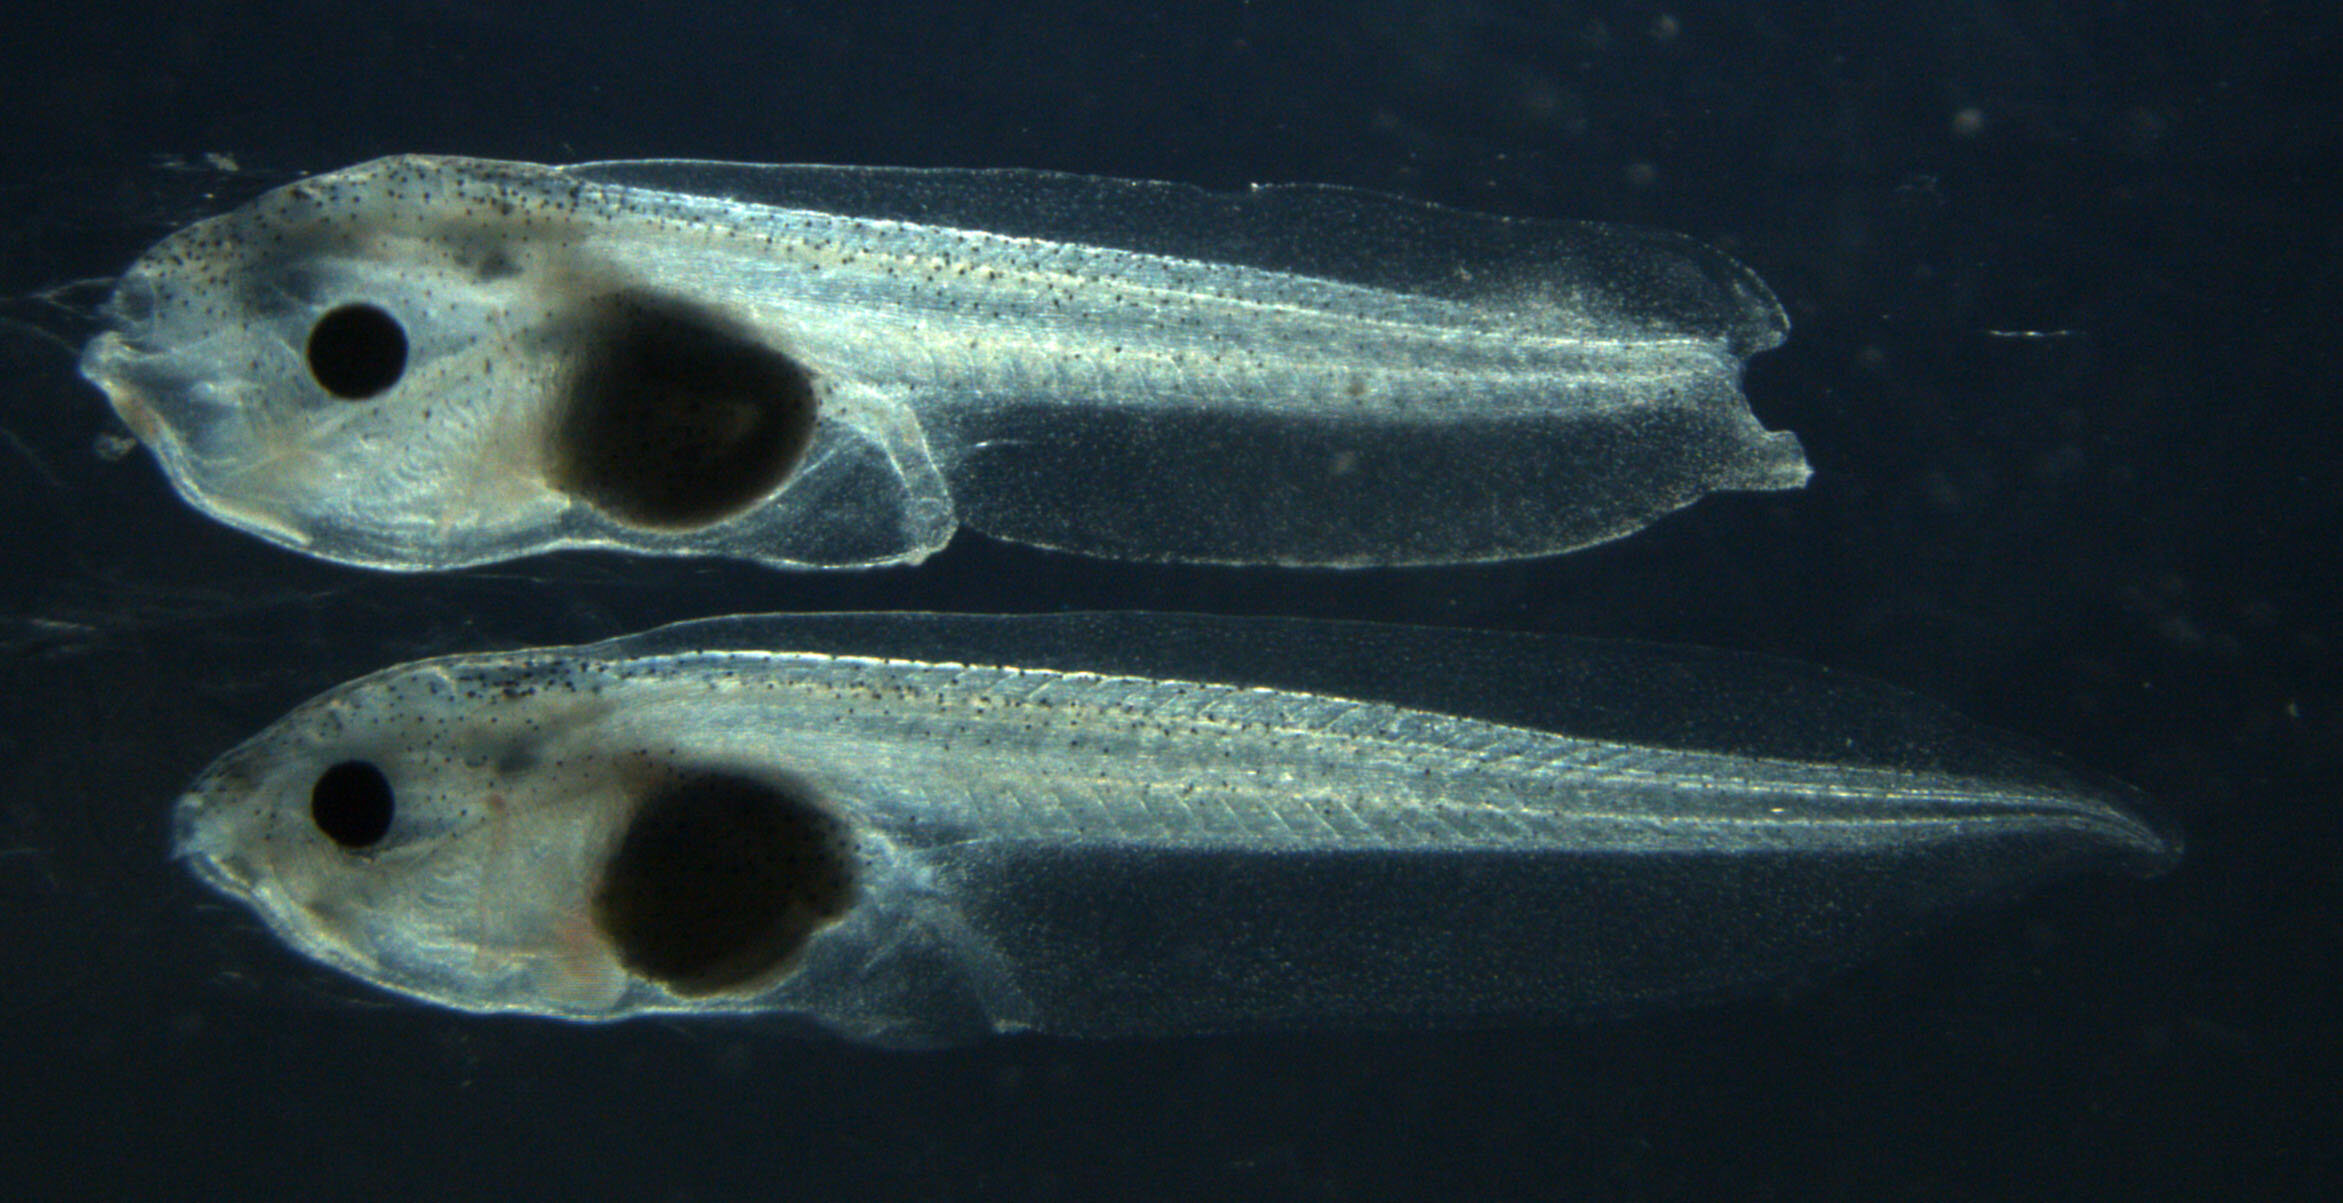 By cutting out one gene, researchers remove a tadpole's ability to regenerate